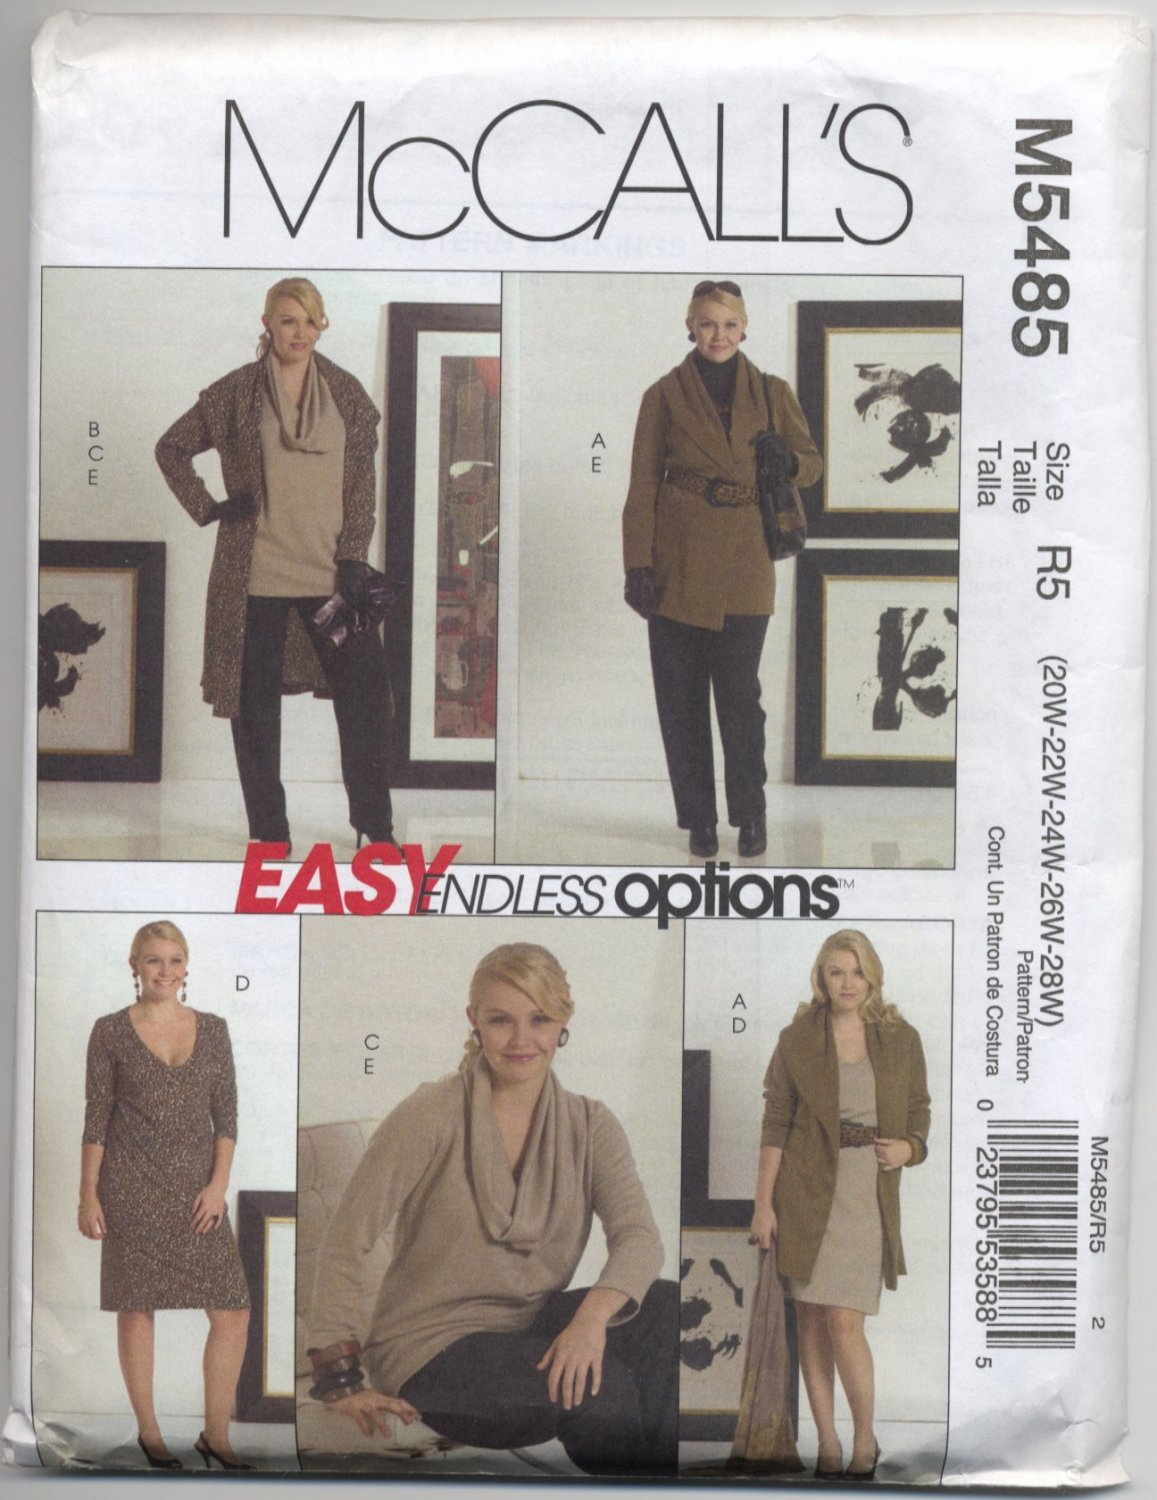 McCall's 5485 Wardrobe Sewing Pattern for Knits Women's 20W 22W 24W 26W 28W